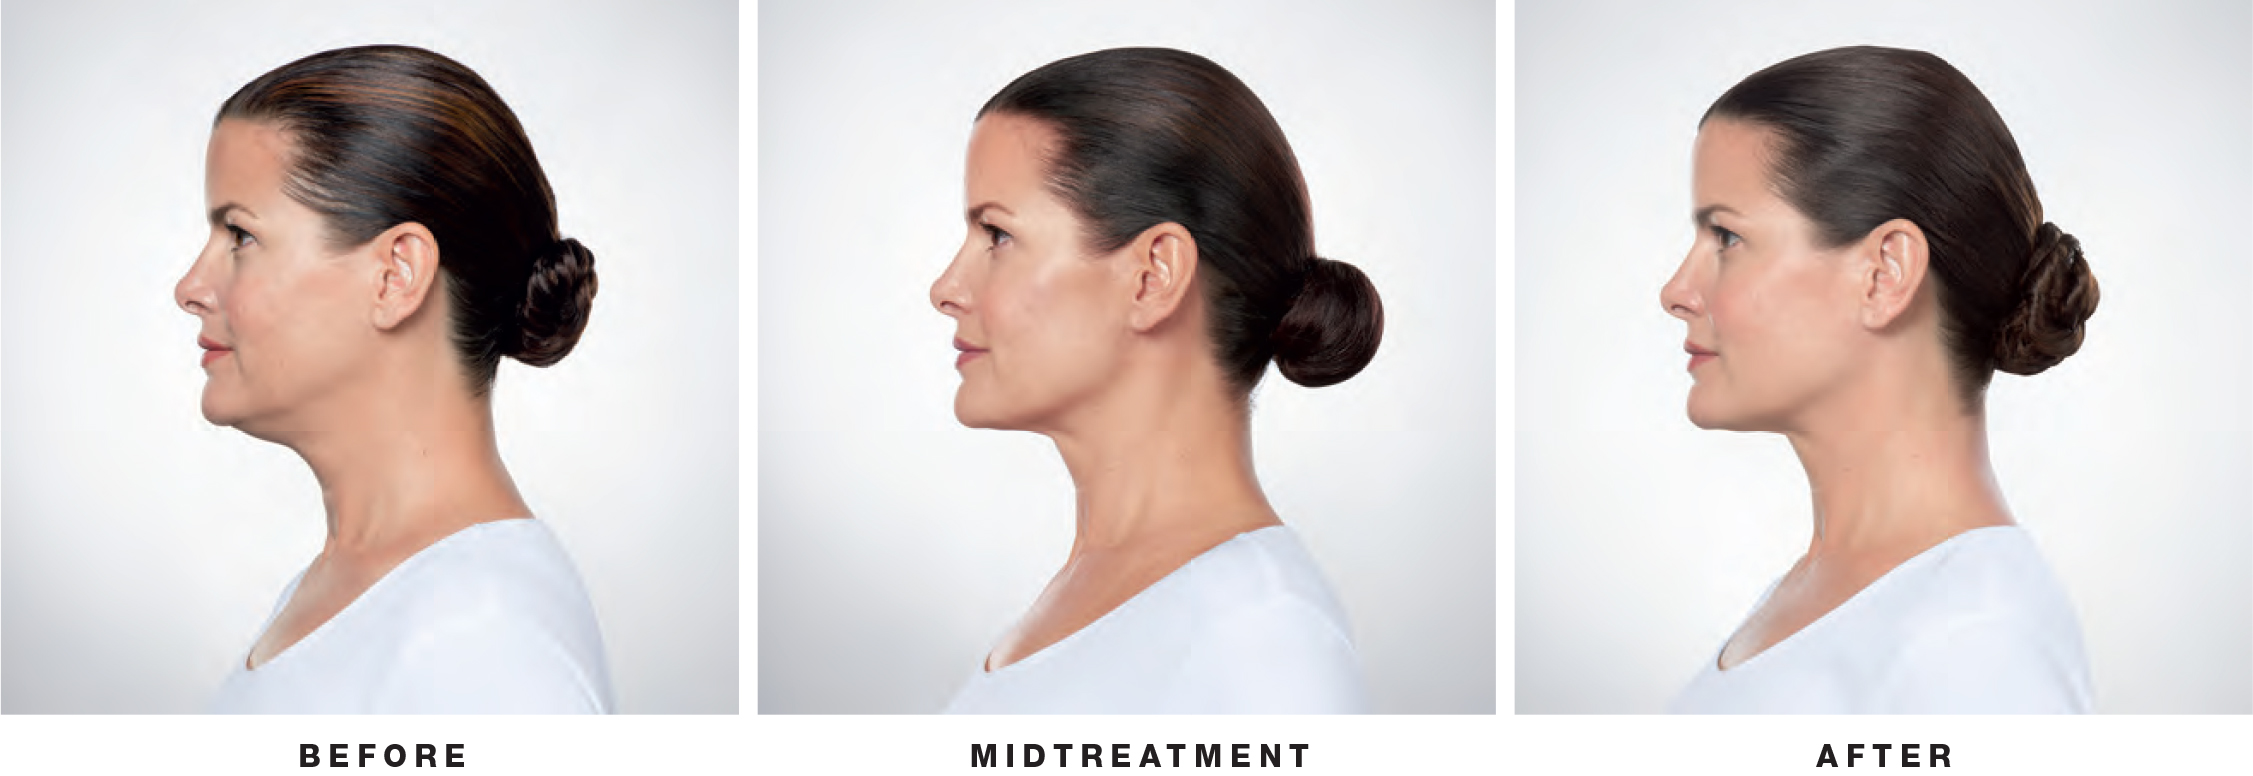 Kybella on Woman Before Midtreatment After